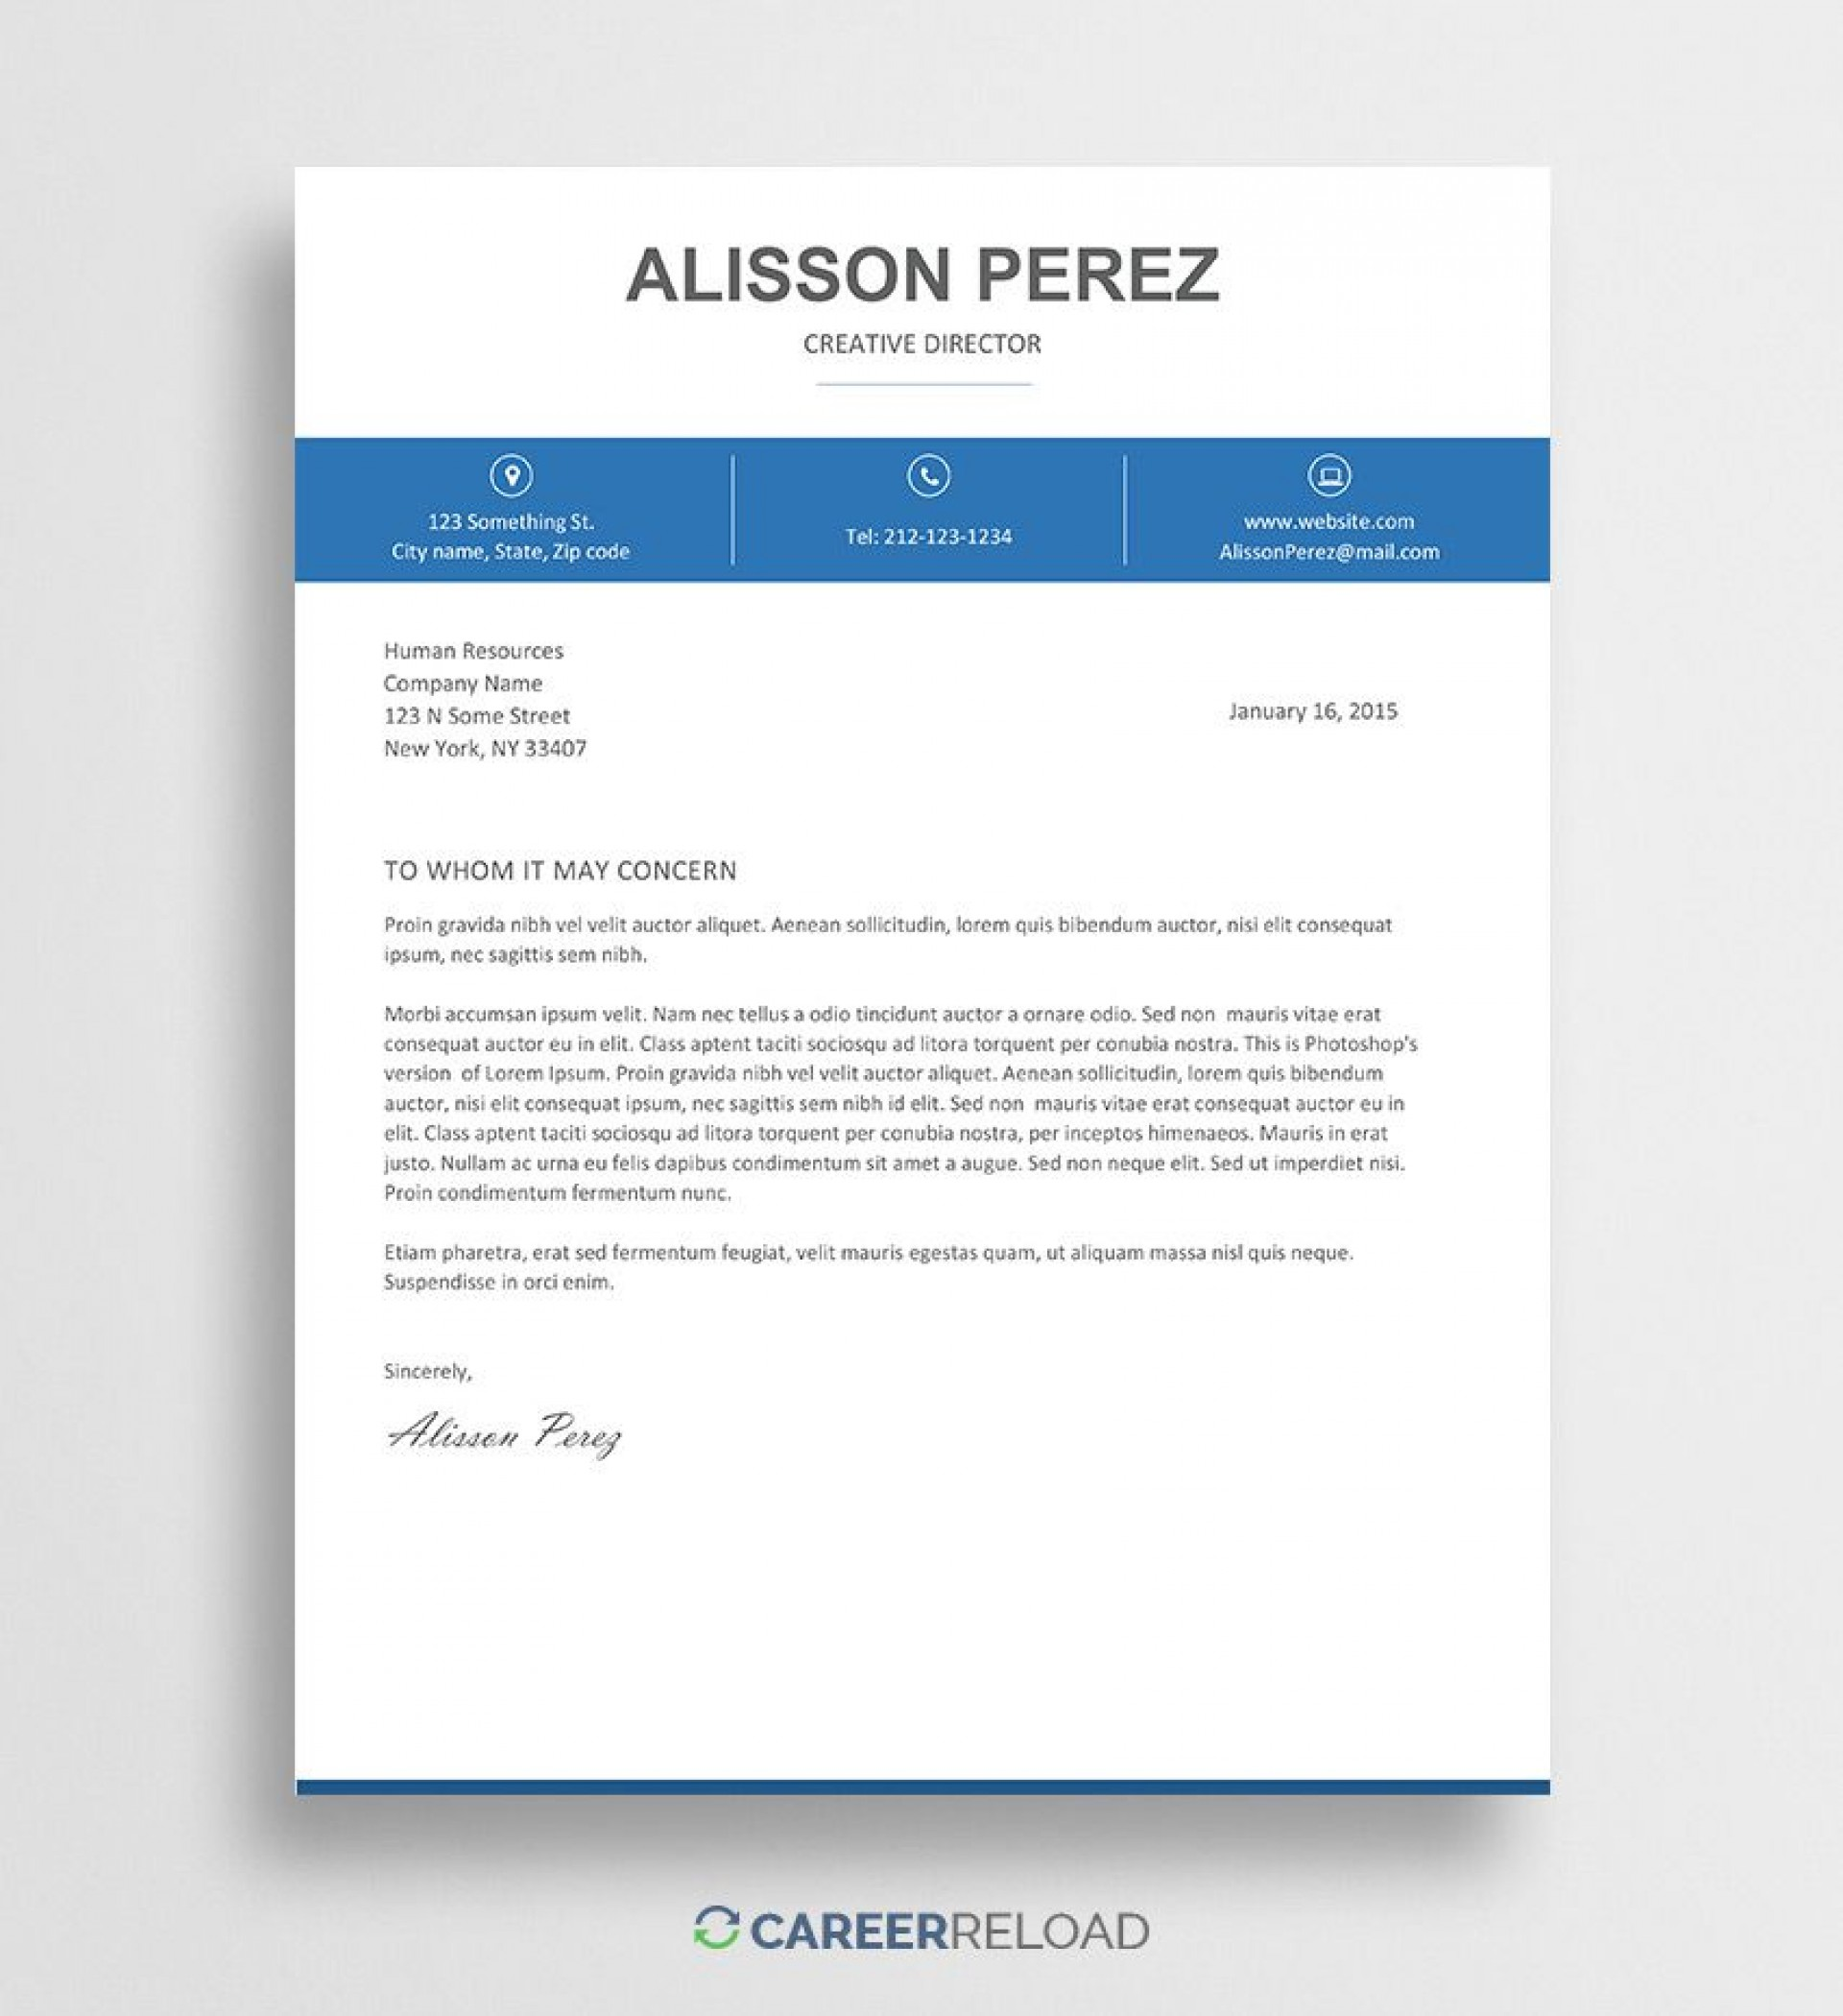 004 Formidable Downloadable Cover Letter Template High Definition  Printable Free Fax Microsoft1920